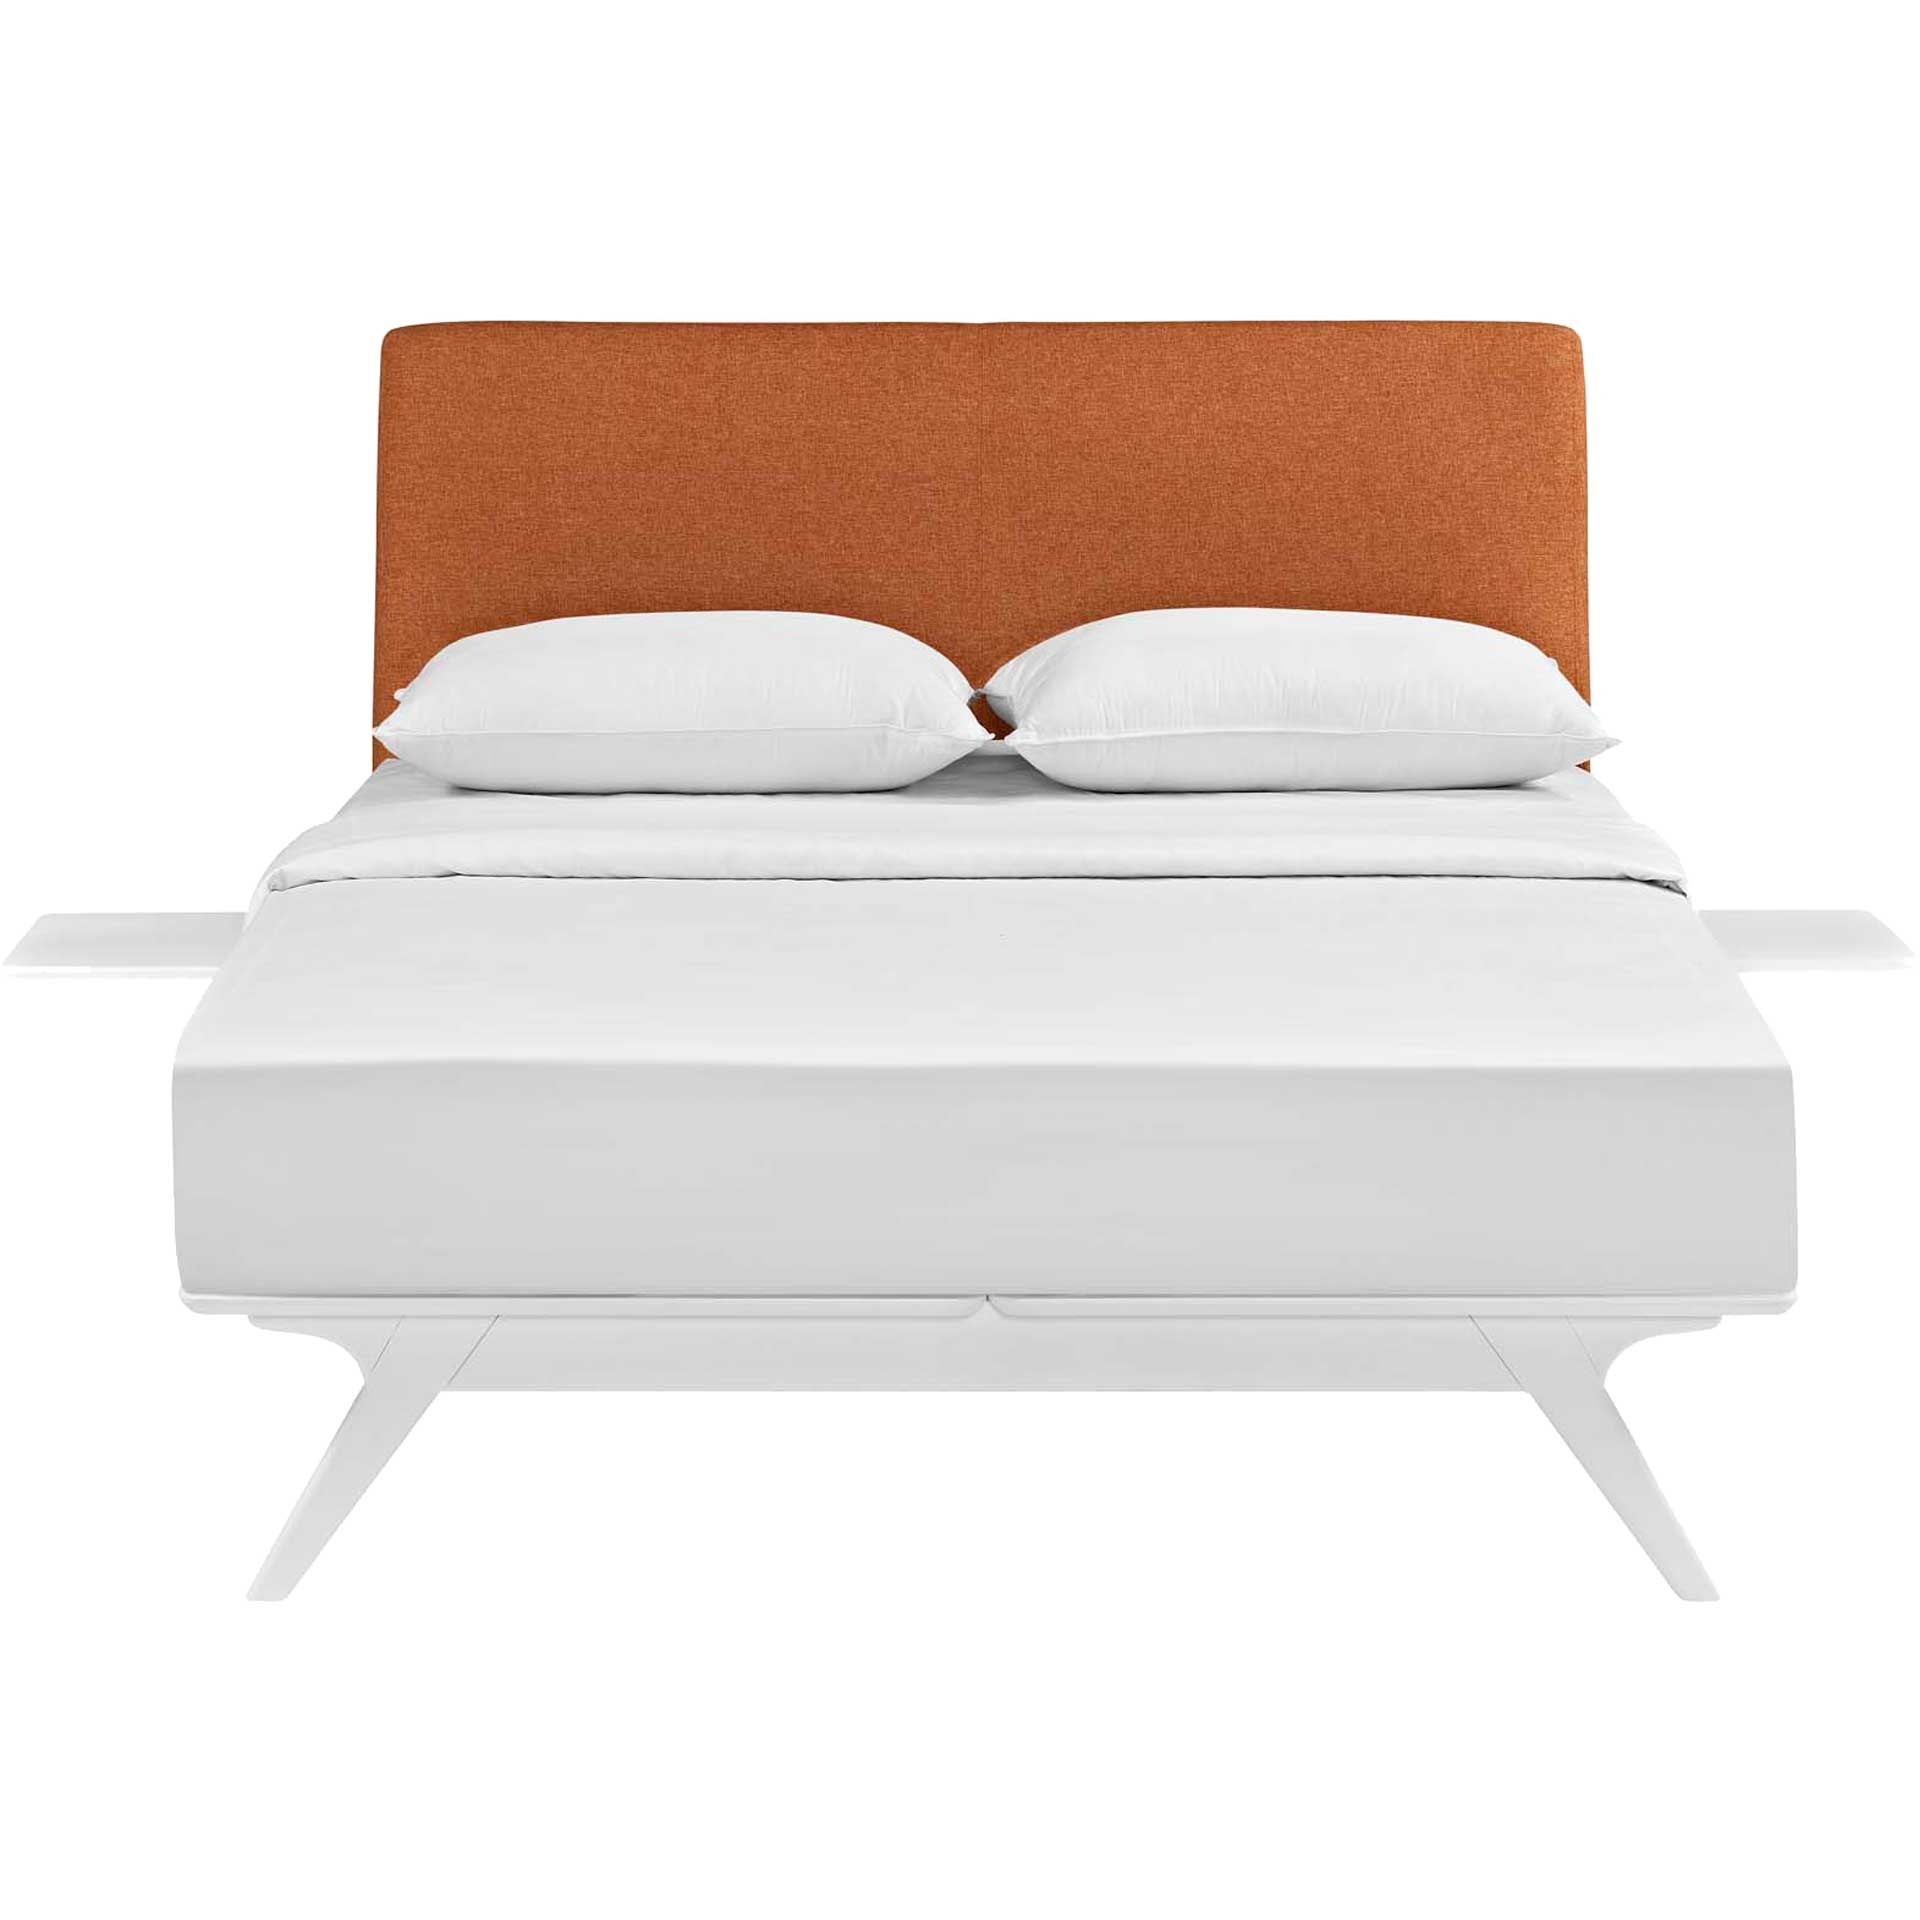 Thames Bed White/Orange With Side Tables